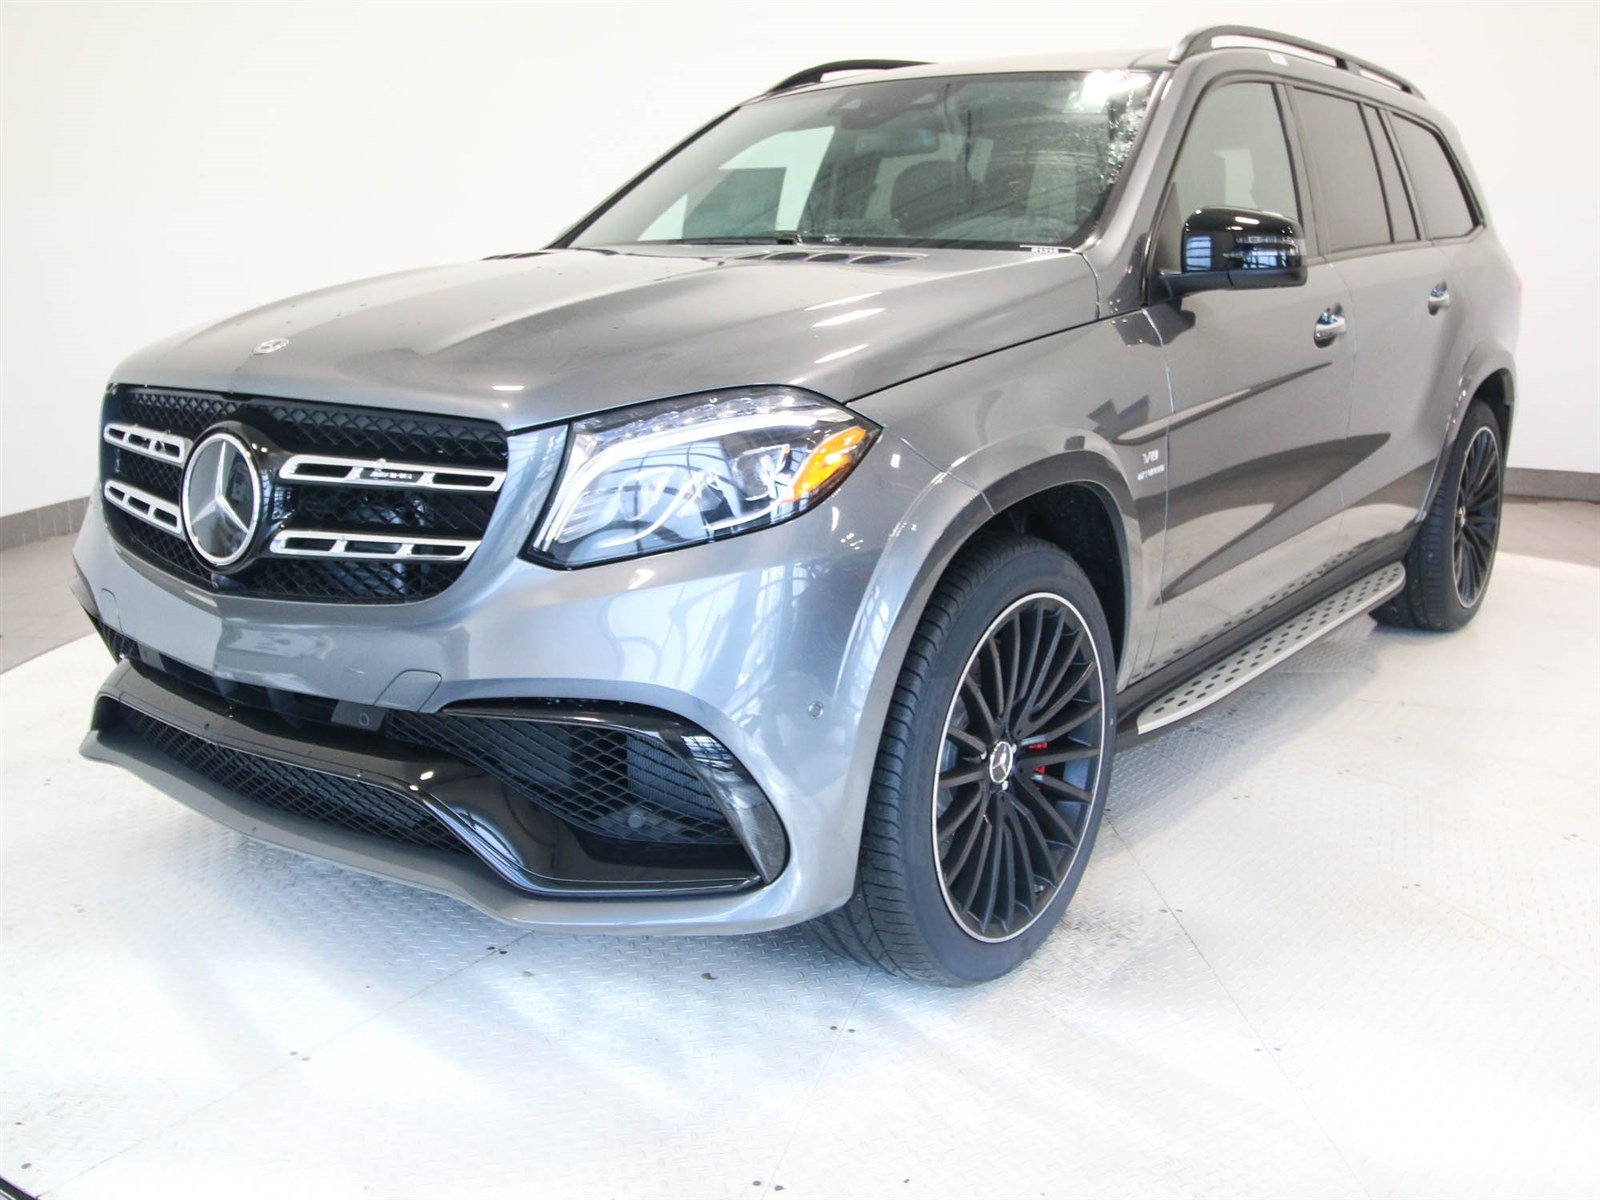 New 2018 mercedes benz gls gls 63 amg suv suv in fort for Mercedes benz amg suv price